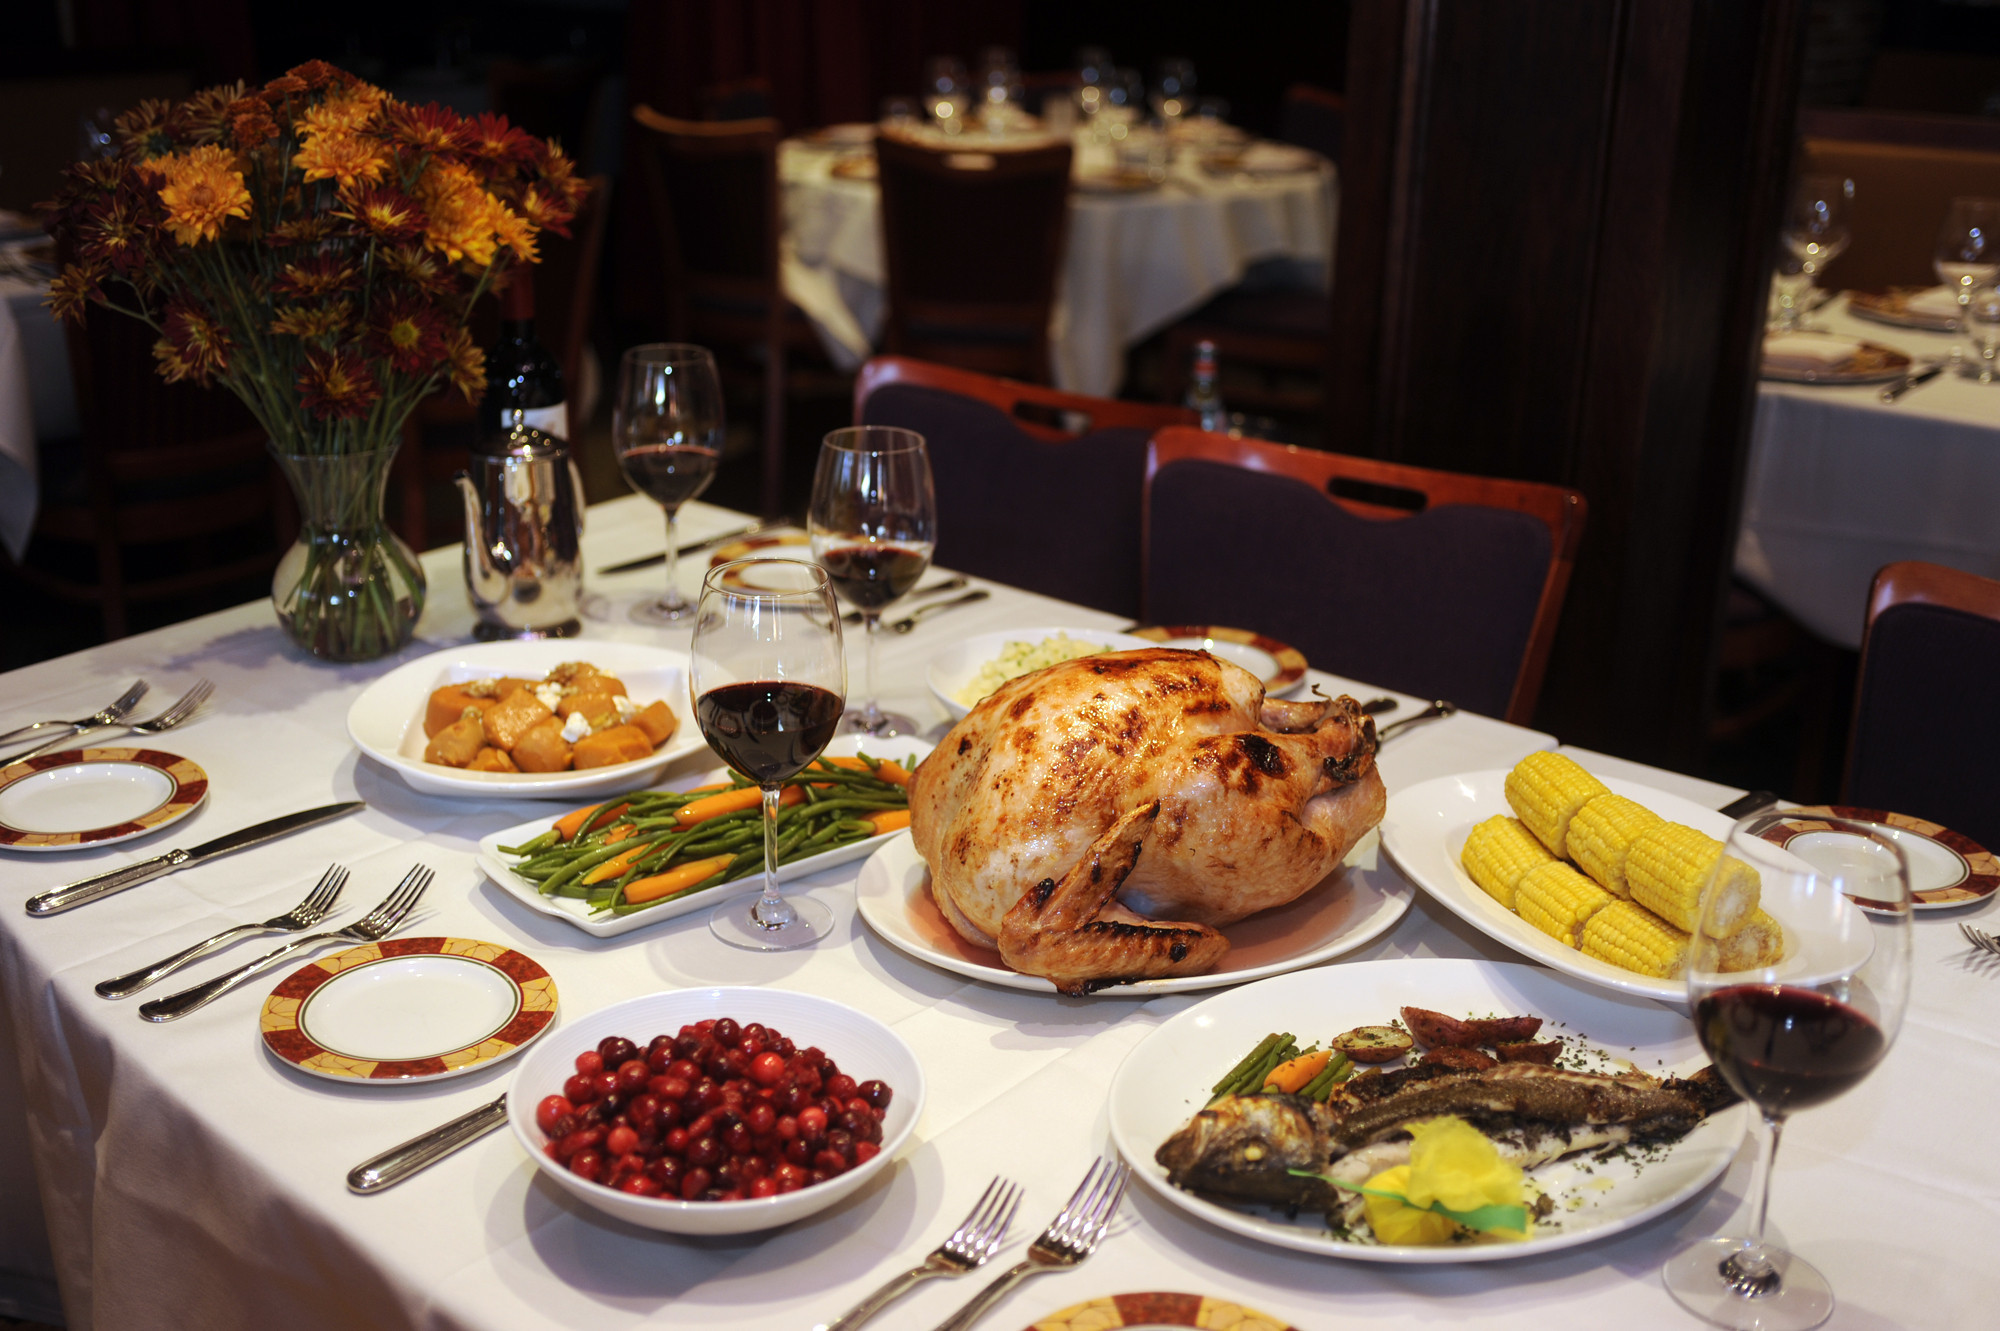 Restaurant Thanksgiving Dinner  Where to dine on Thanksgiving Day in Baltimore